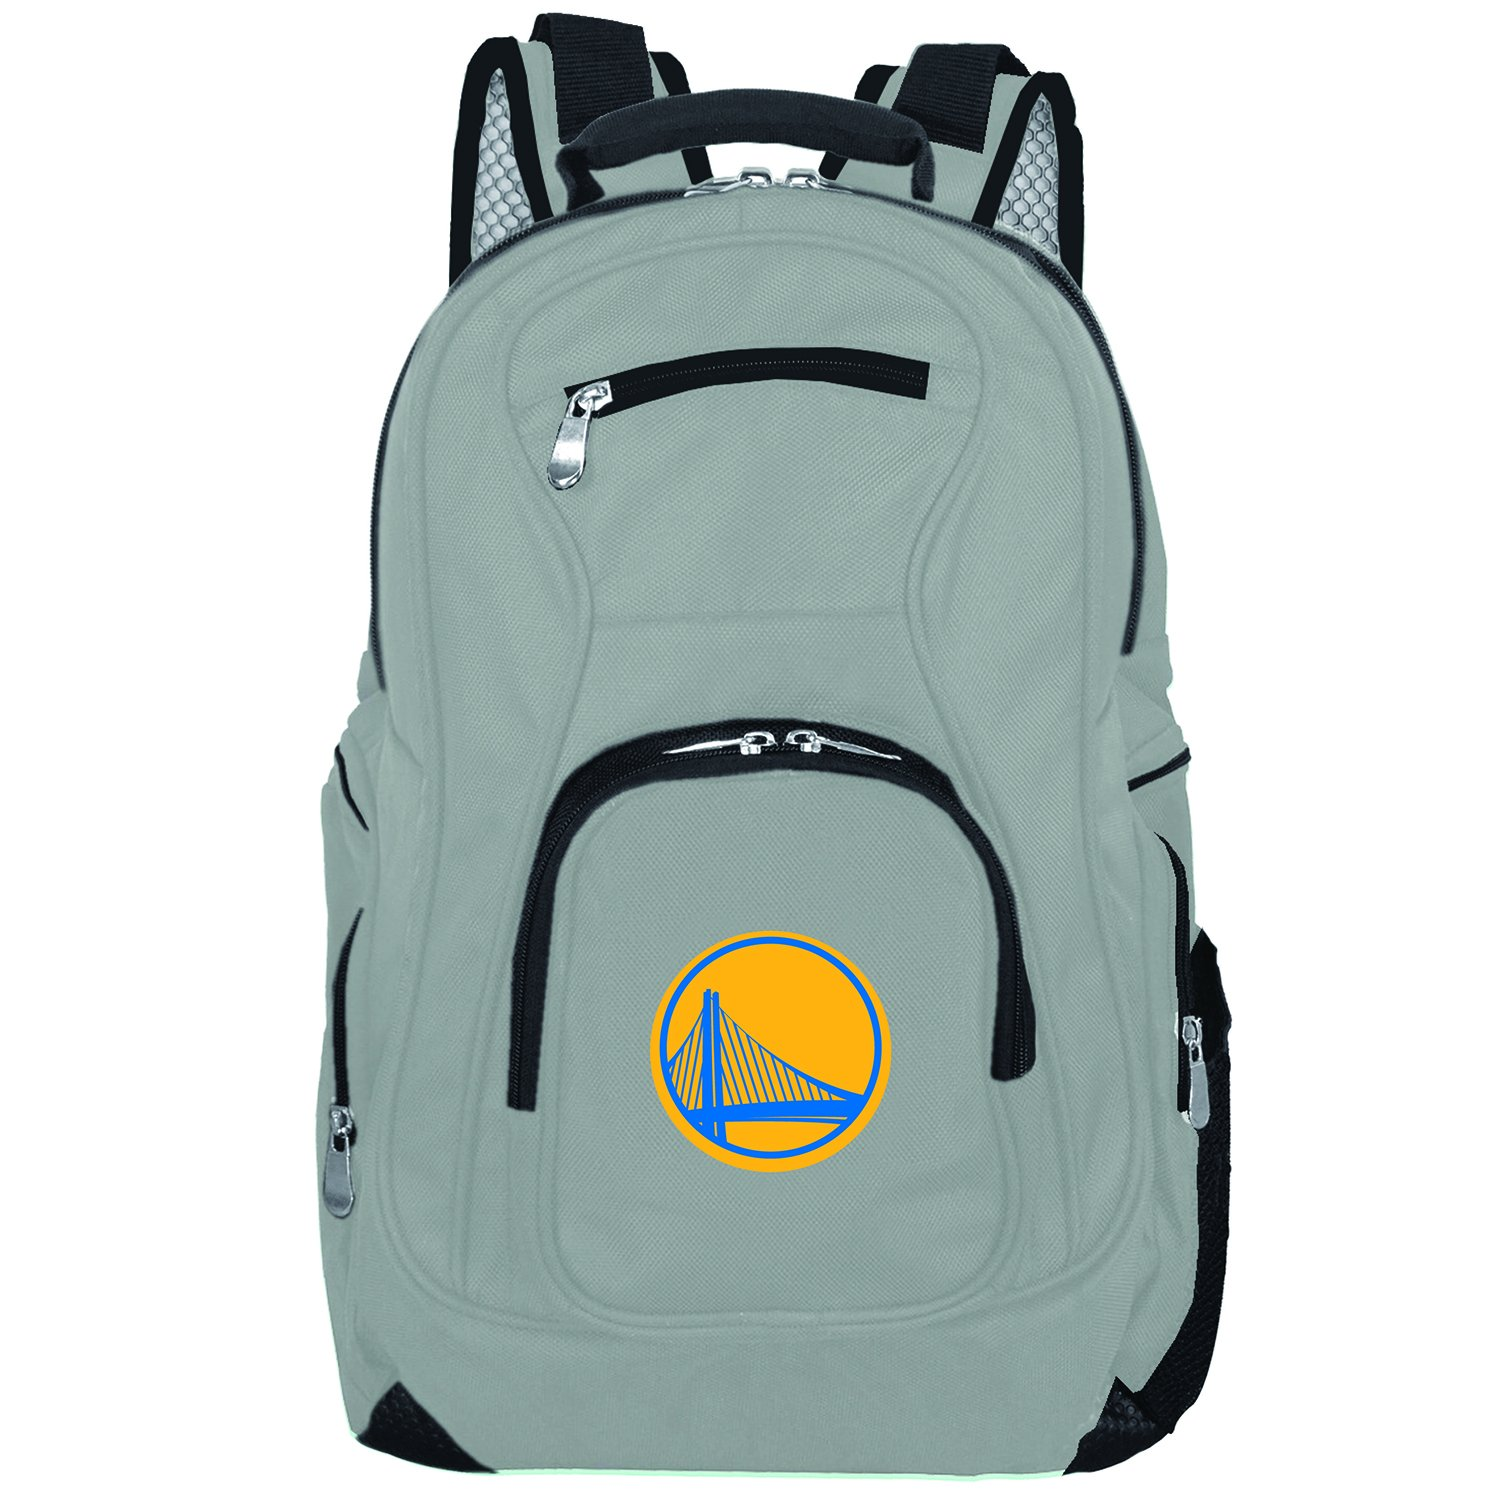 NBA Golden State Warriors Voyager Laptop Backpack, 19-inches, Grey by Denco